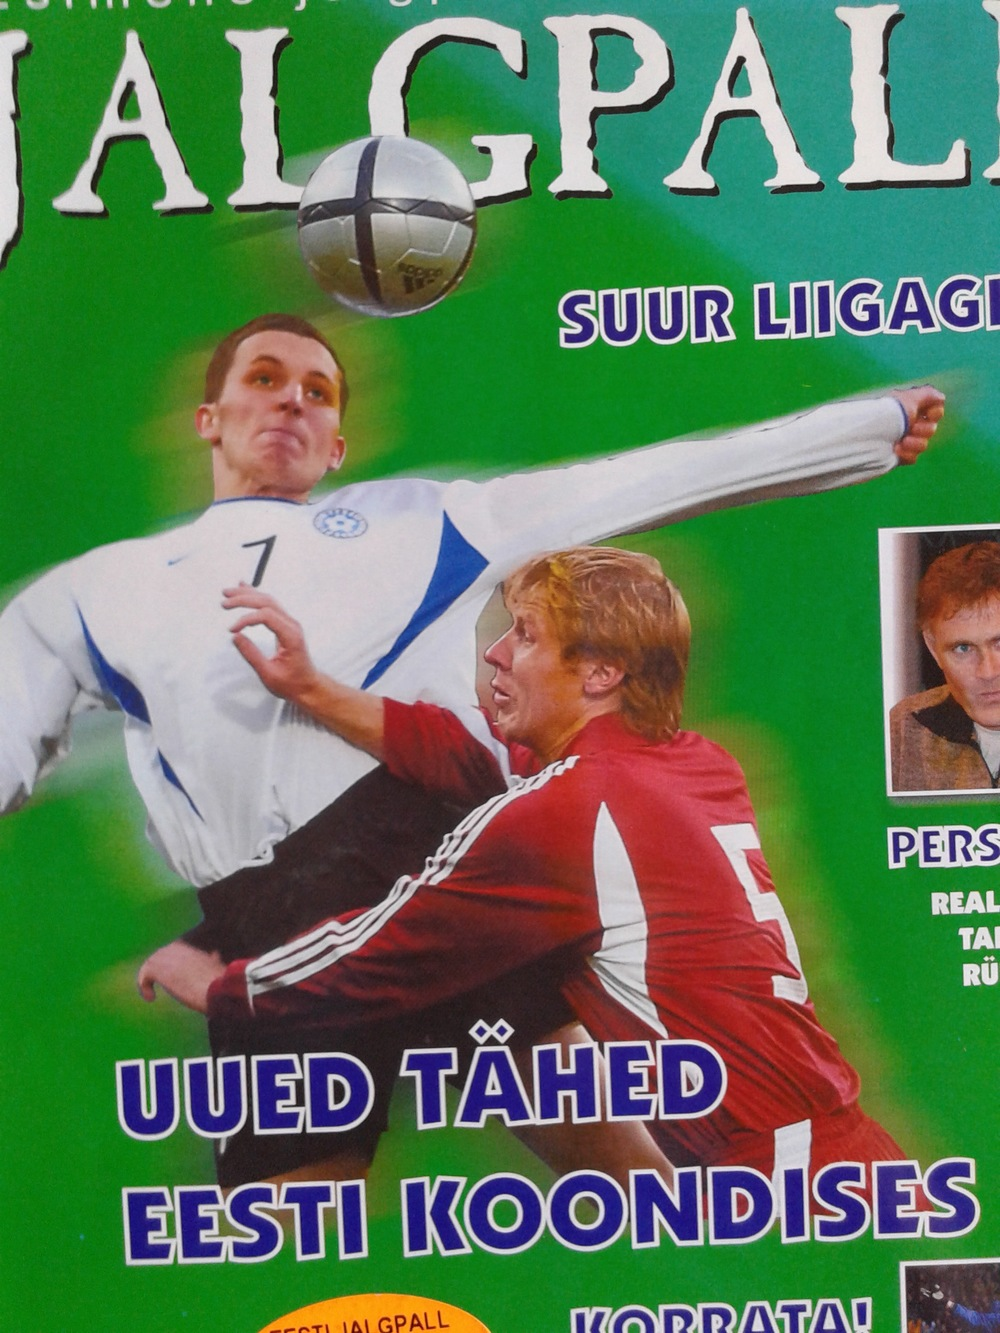 'Eesti Jalgpalli 2005' it costed 40 Estonian Kroons (about 2.60€)